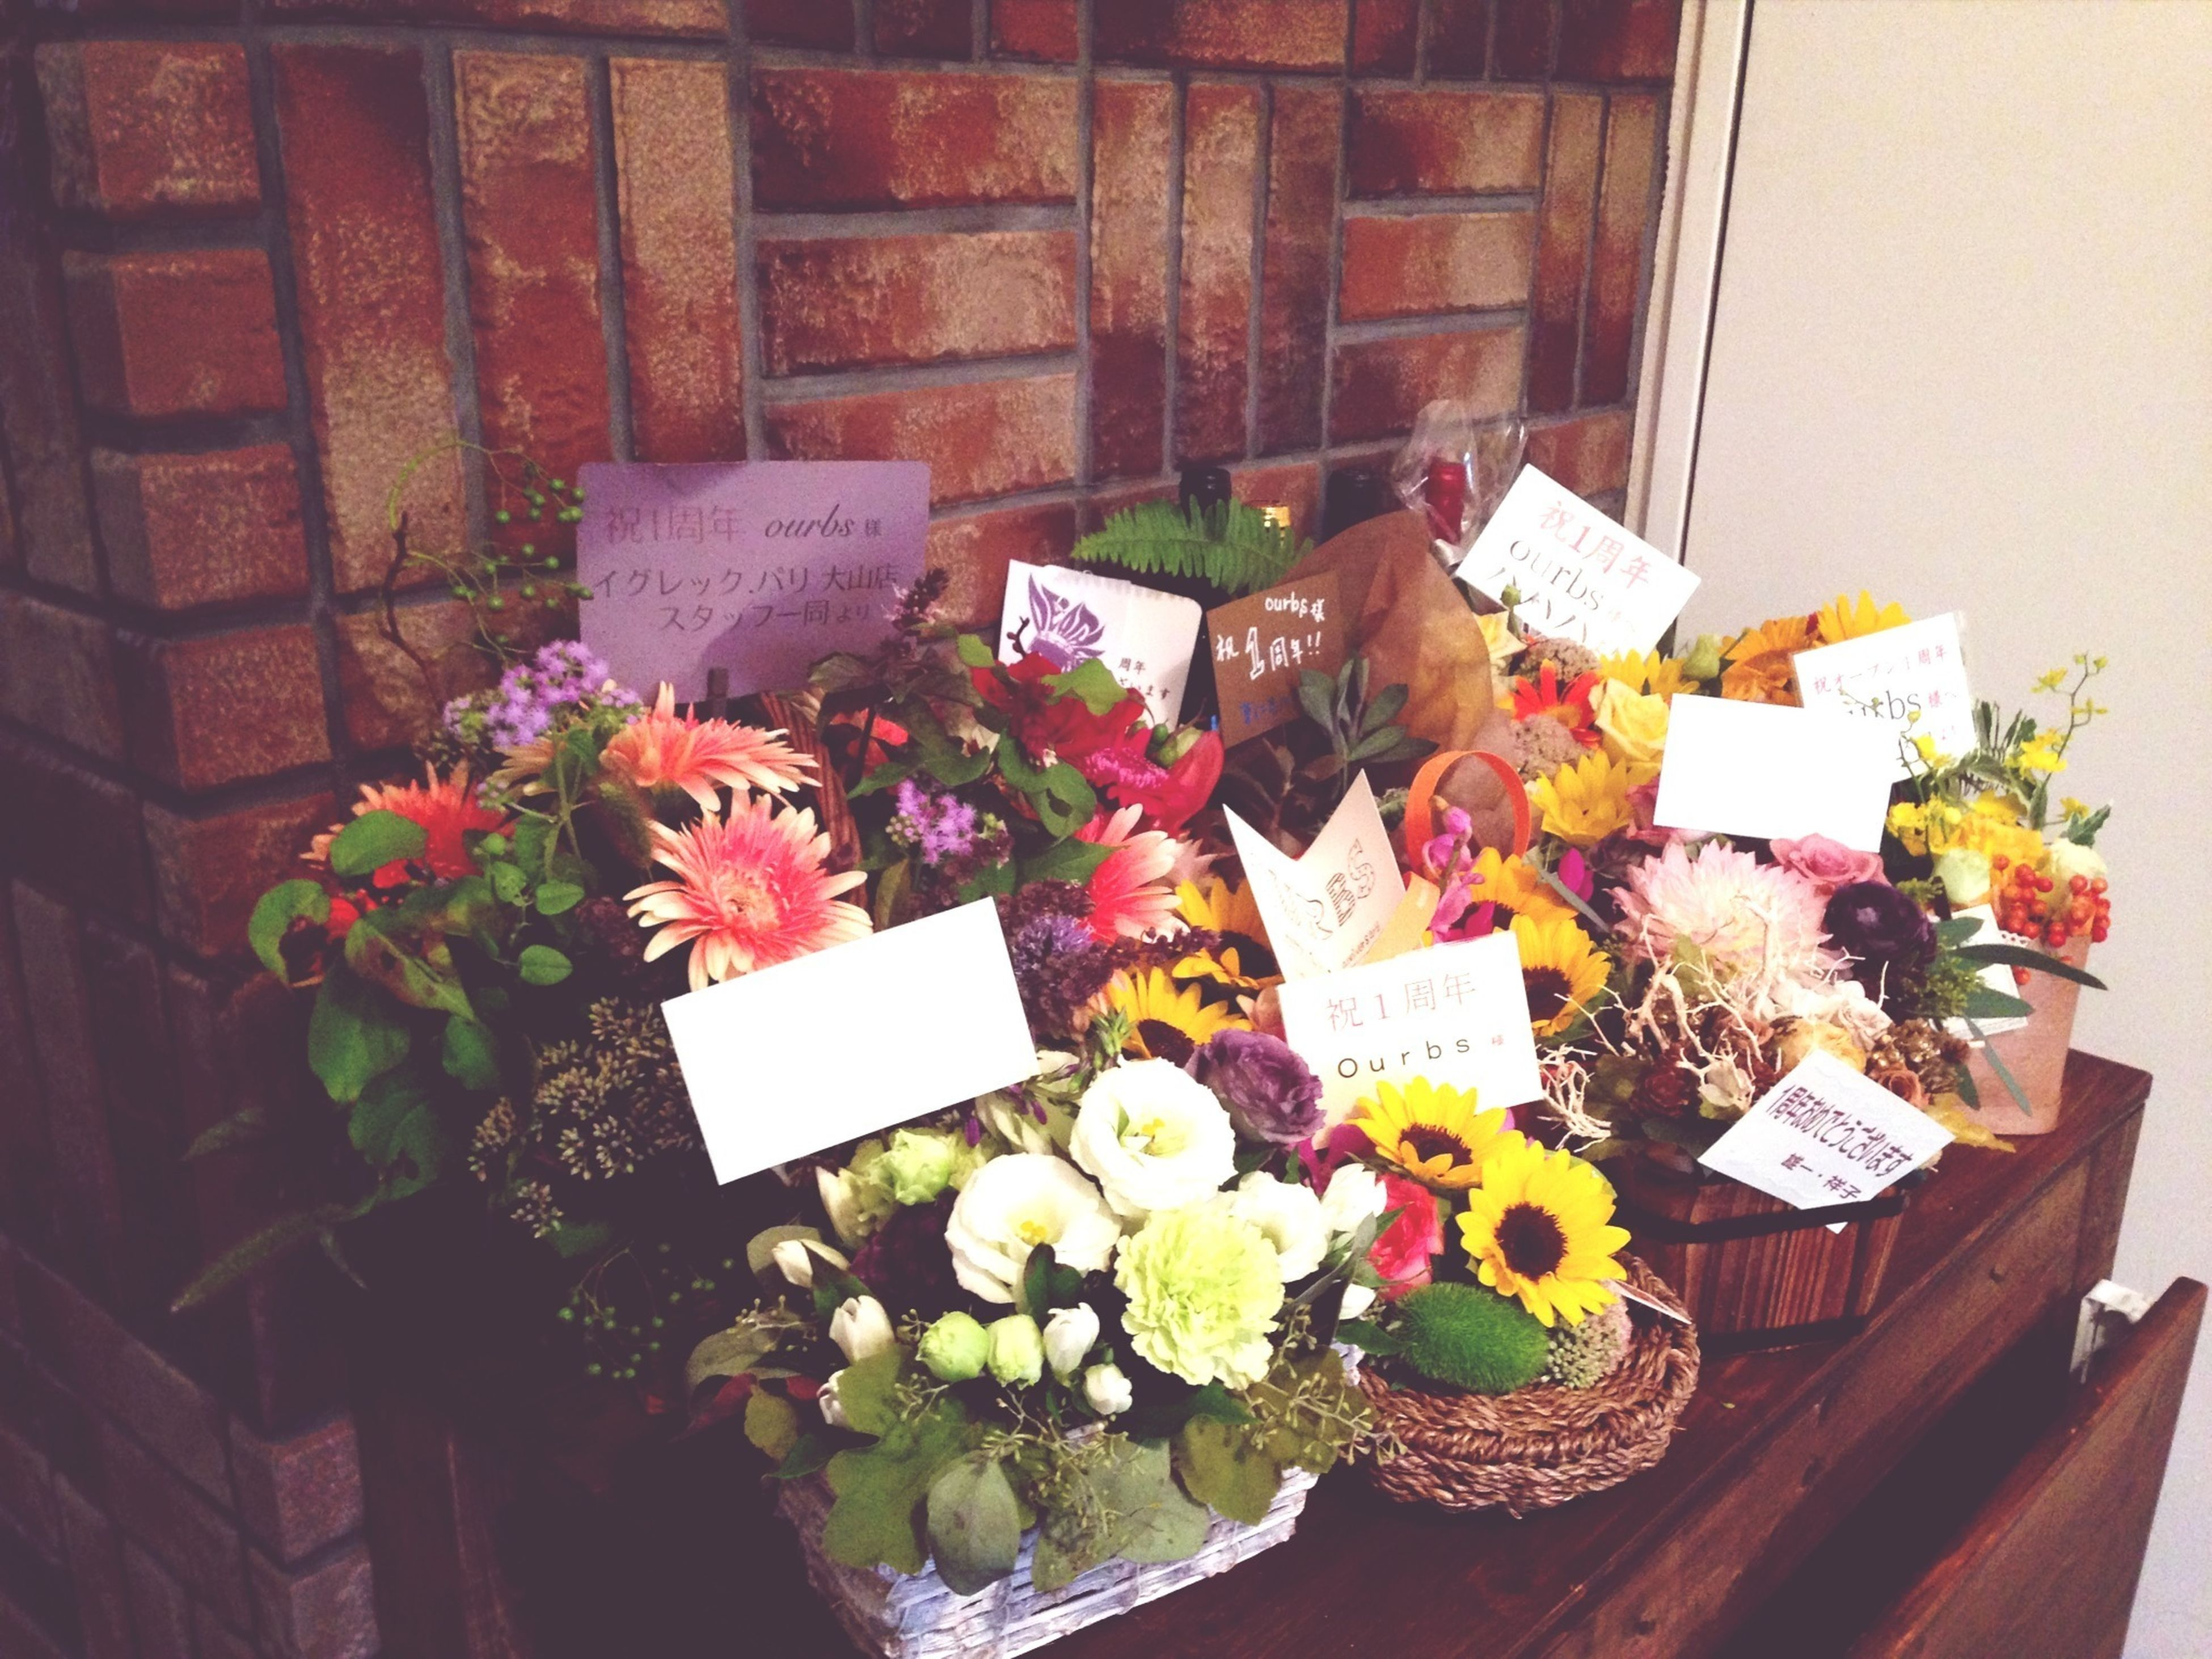 flower, freshness, indoors, variation, table, bouquet, high angle view, arrangement, large group of objects, abundance, still life, choice, potted plant, multi colored, fragility, decoration, plant, no people, bunch of flowers, vase